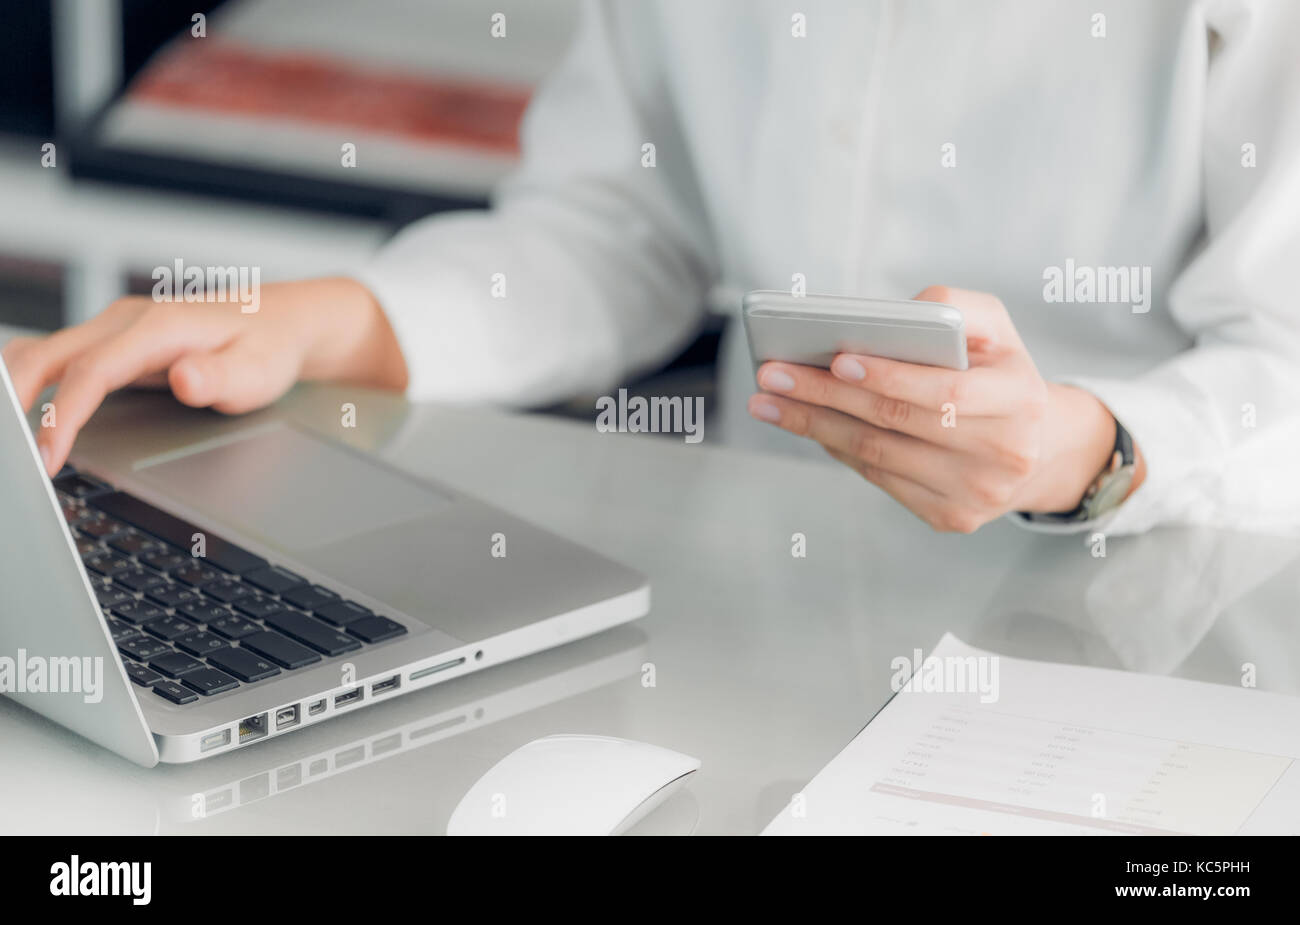 Close up businesswoman holding mobile phone and using laptop computer on office desk,Business communication concept. - Stock Image